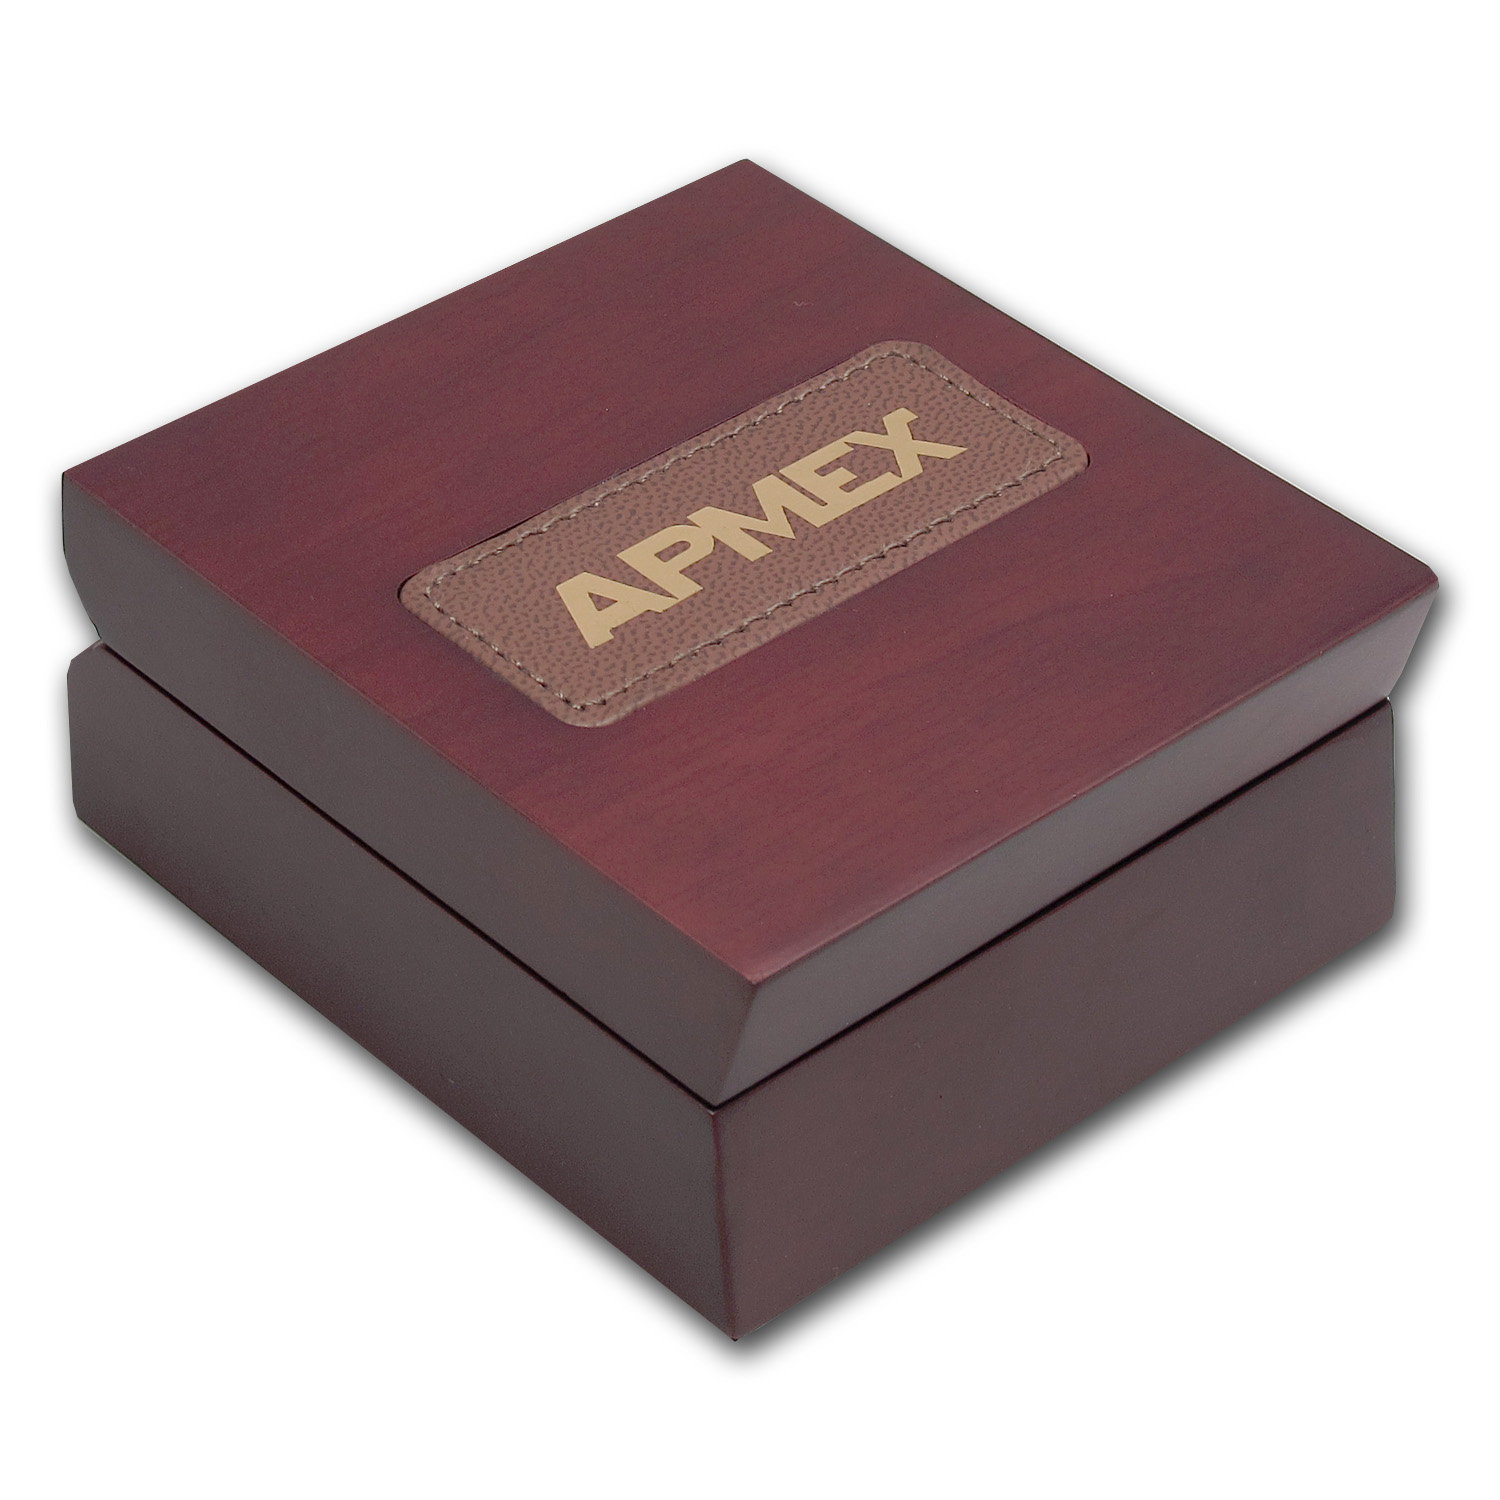 APMEX Wood Presentation Box - 10 oz Credit Suisse Gold Bar